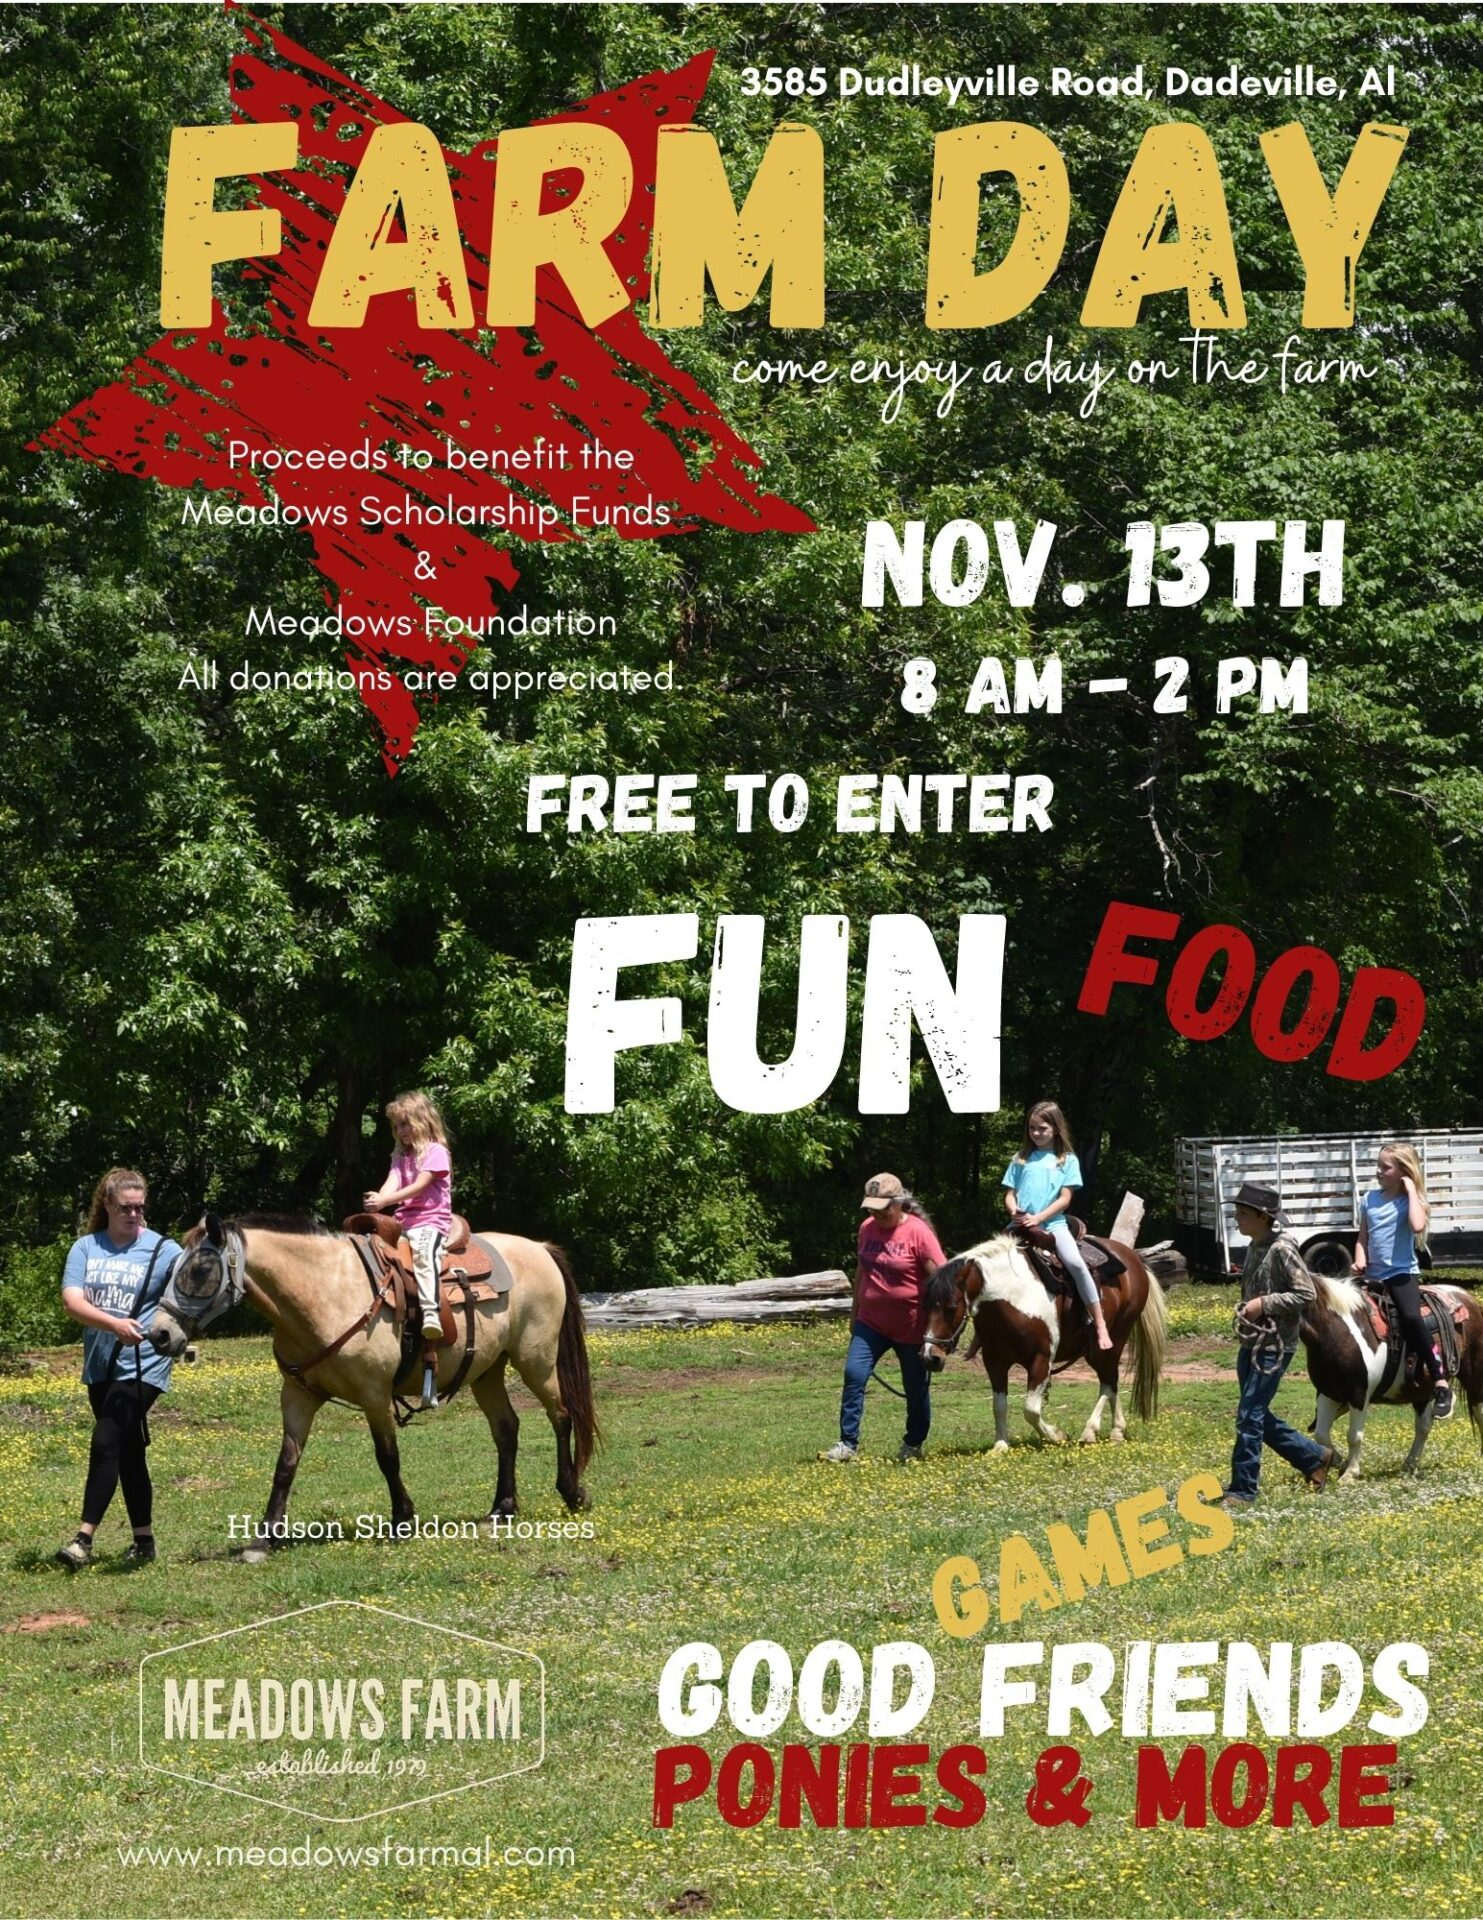 flyer for farm day event at meadows farm